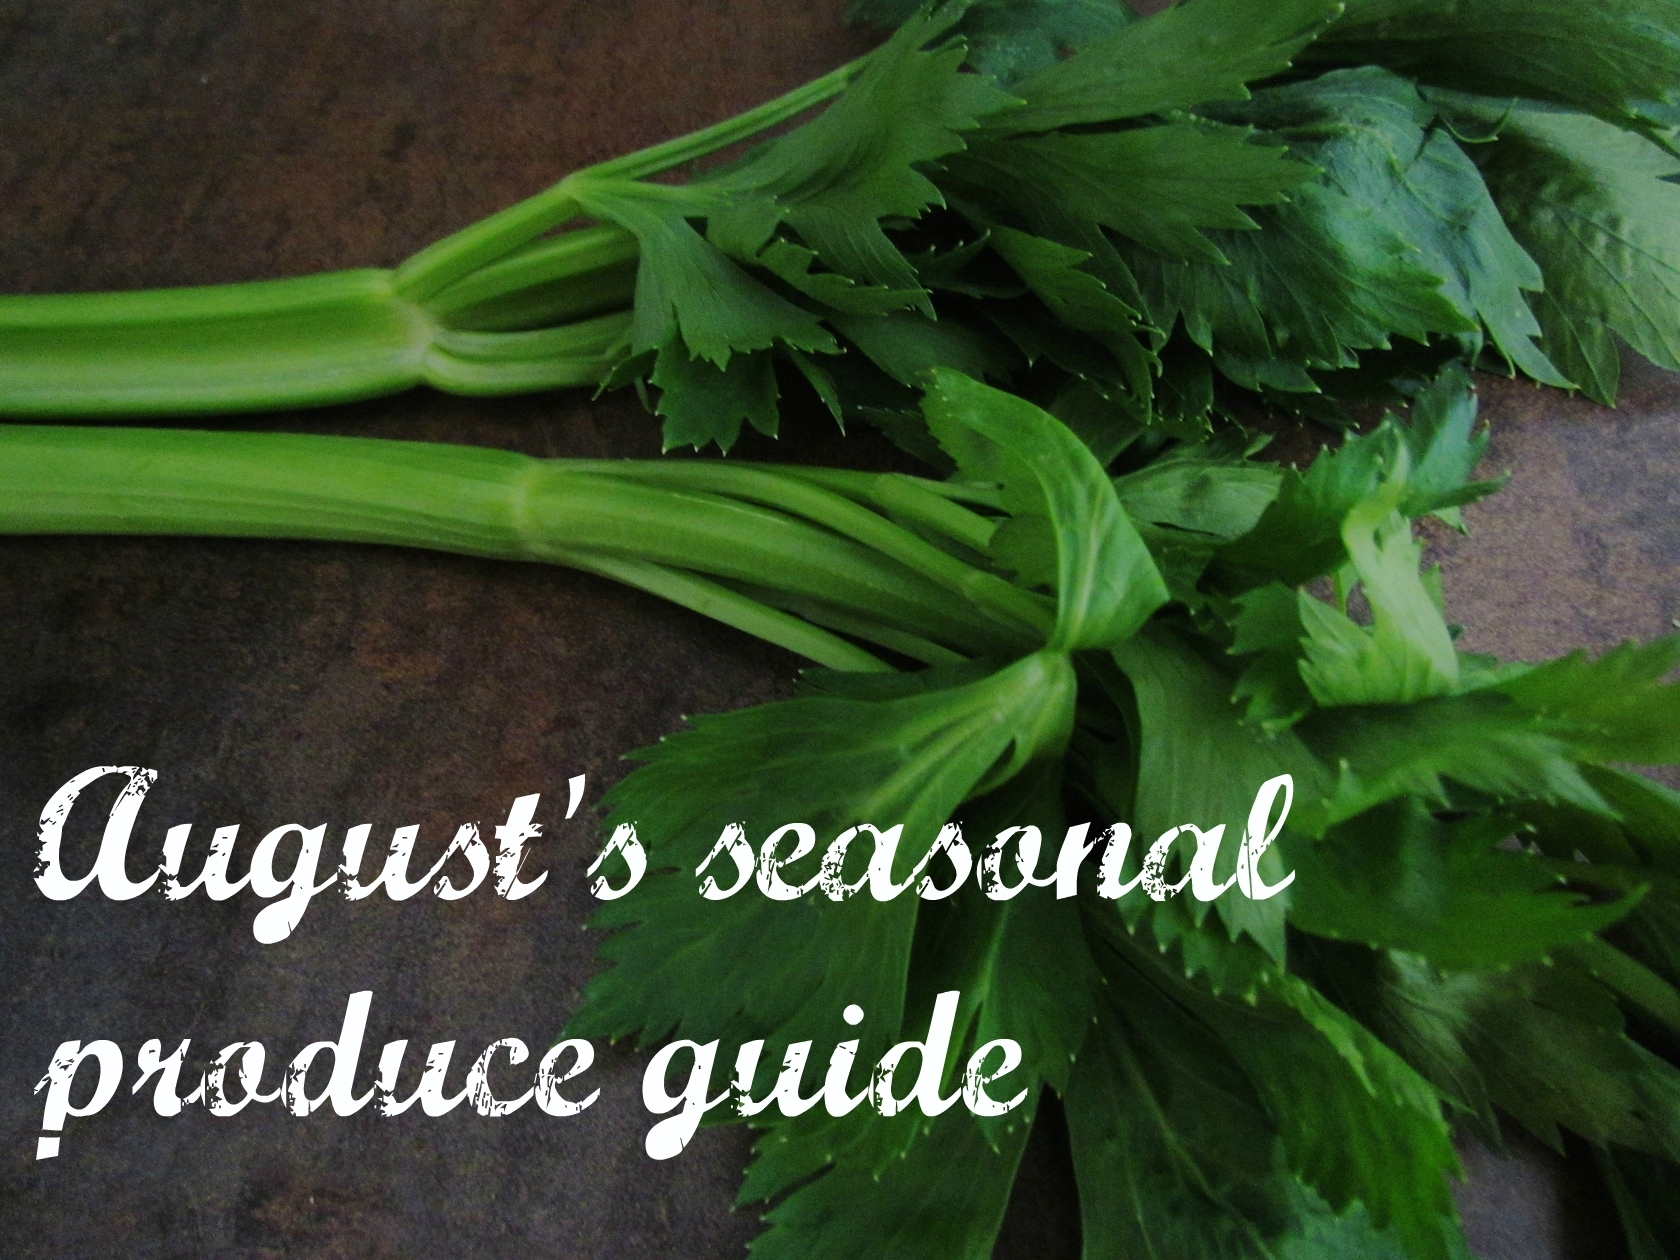 seasonal produce guide for switzerland: august